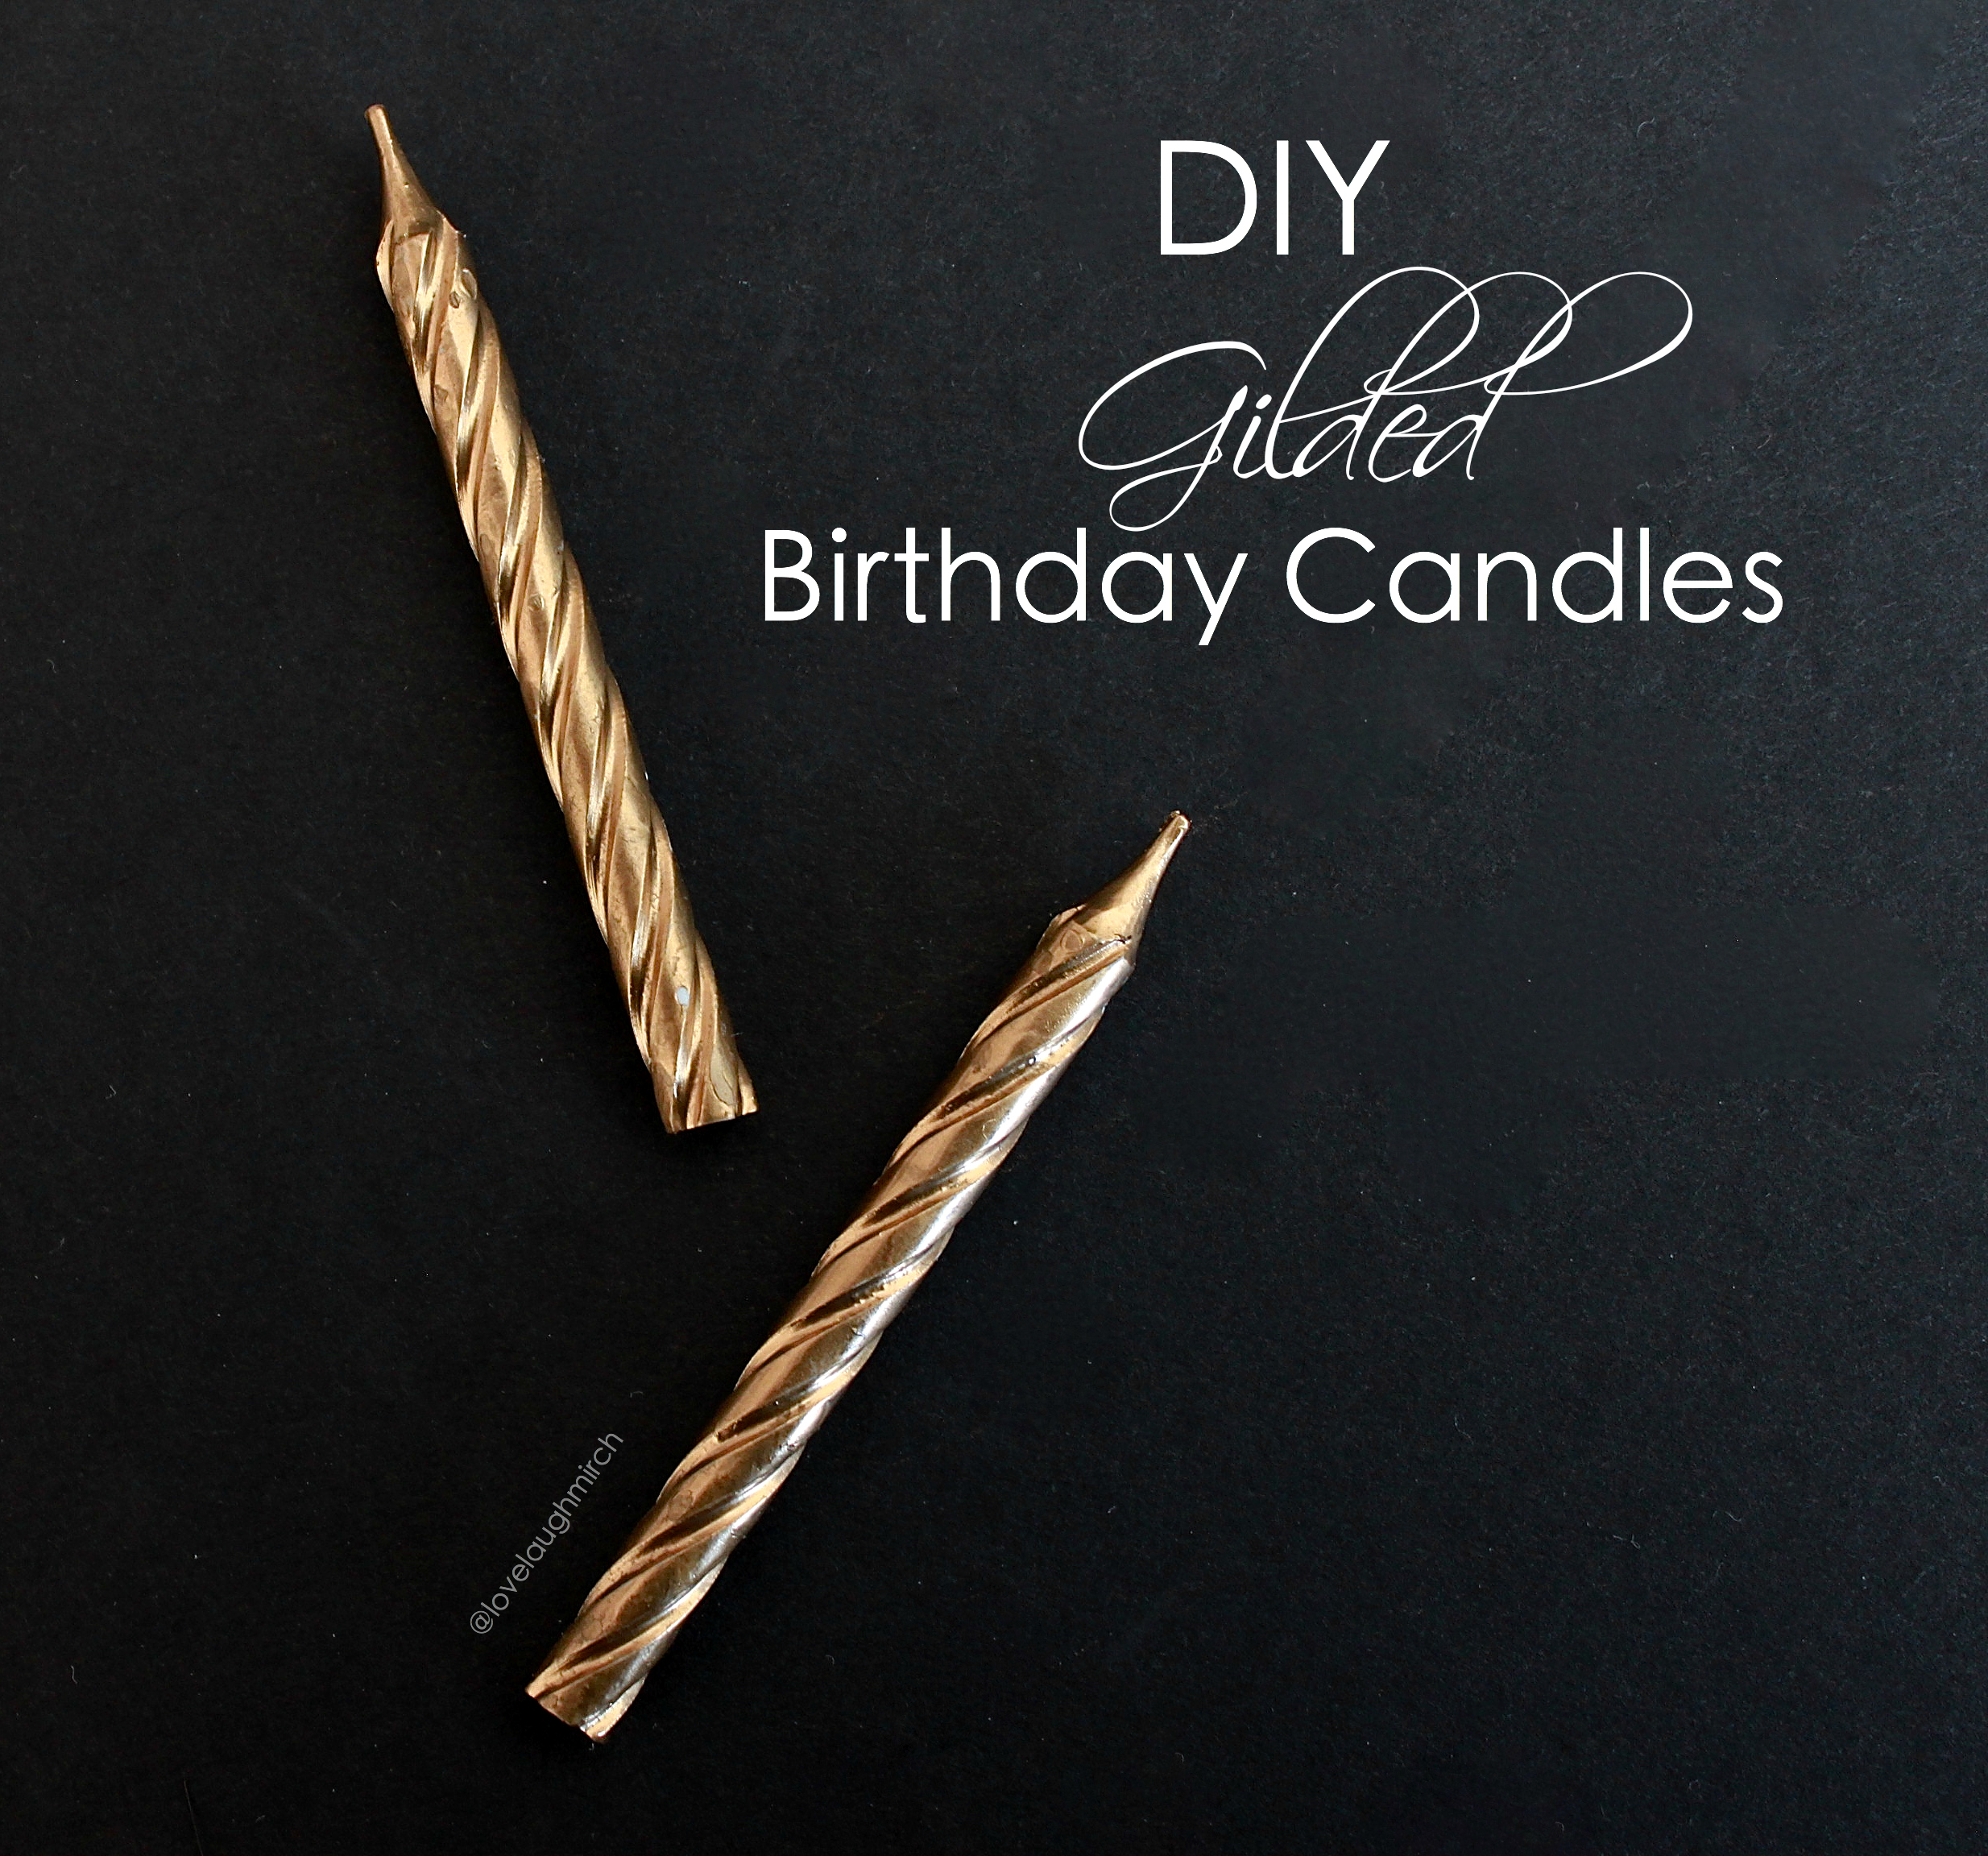 DIY Gilded Birthday Candles